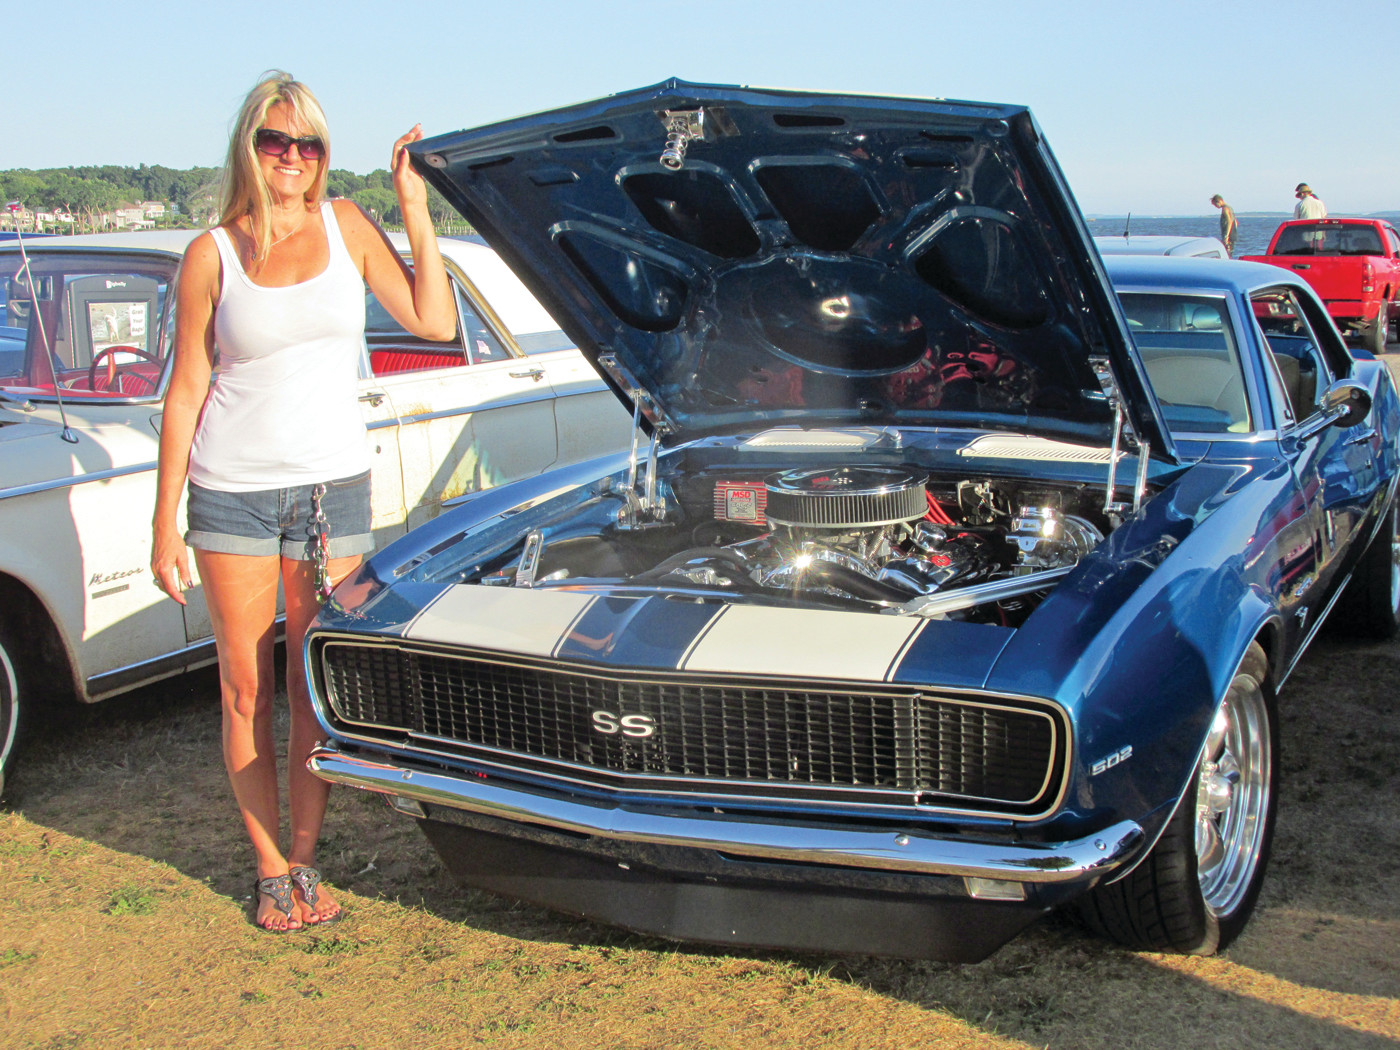 VINTAGE VEHICLE: Kristen Collard is the proud owner of this shiny blue 1967 Chevrolet Camaro that has a ZZ 502 engine and is an example of the many classic cars that will be at Saturday's Cruising at the Crowne Car Show in Warwick.